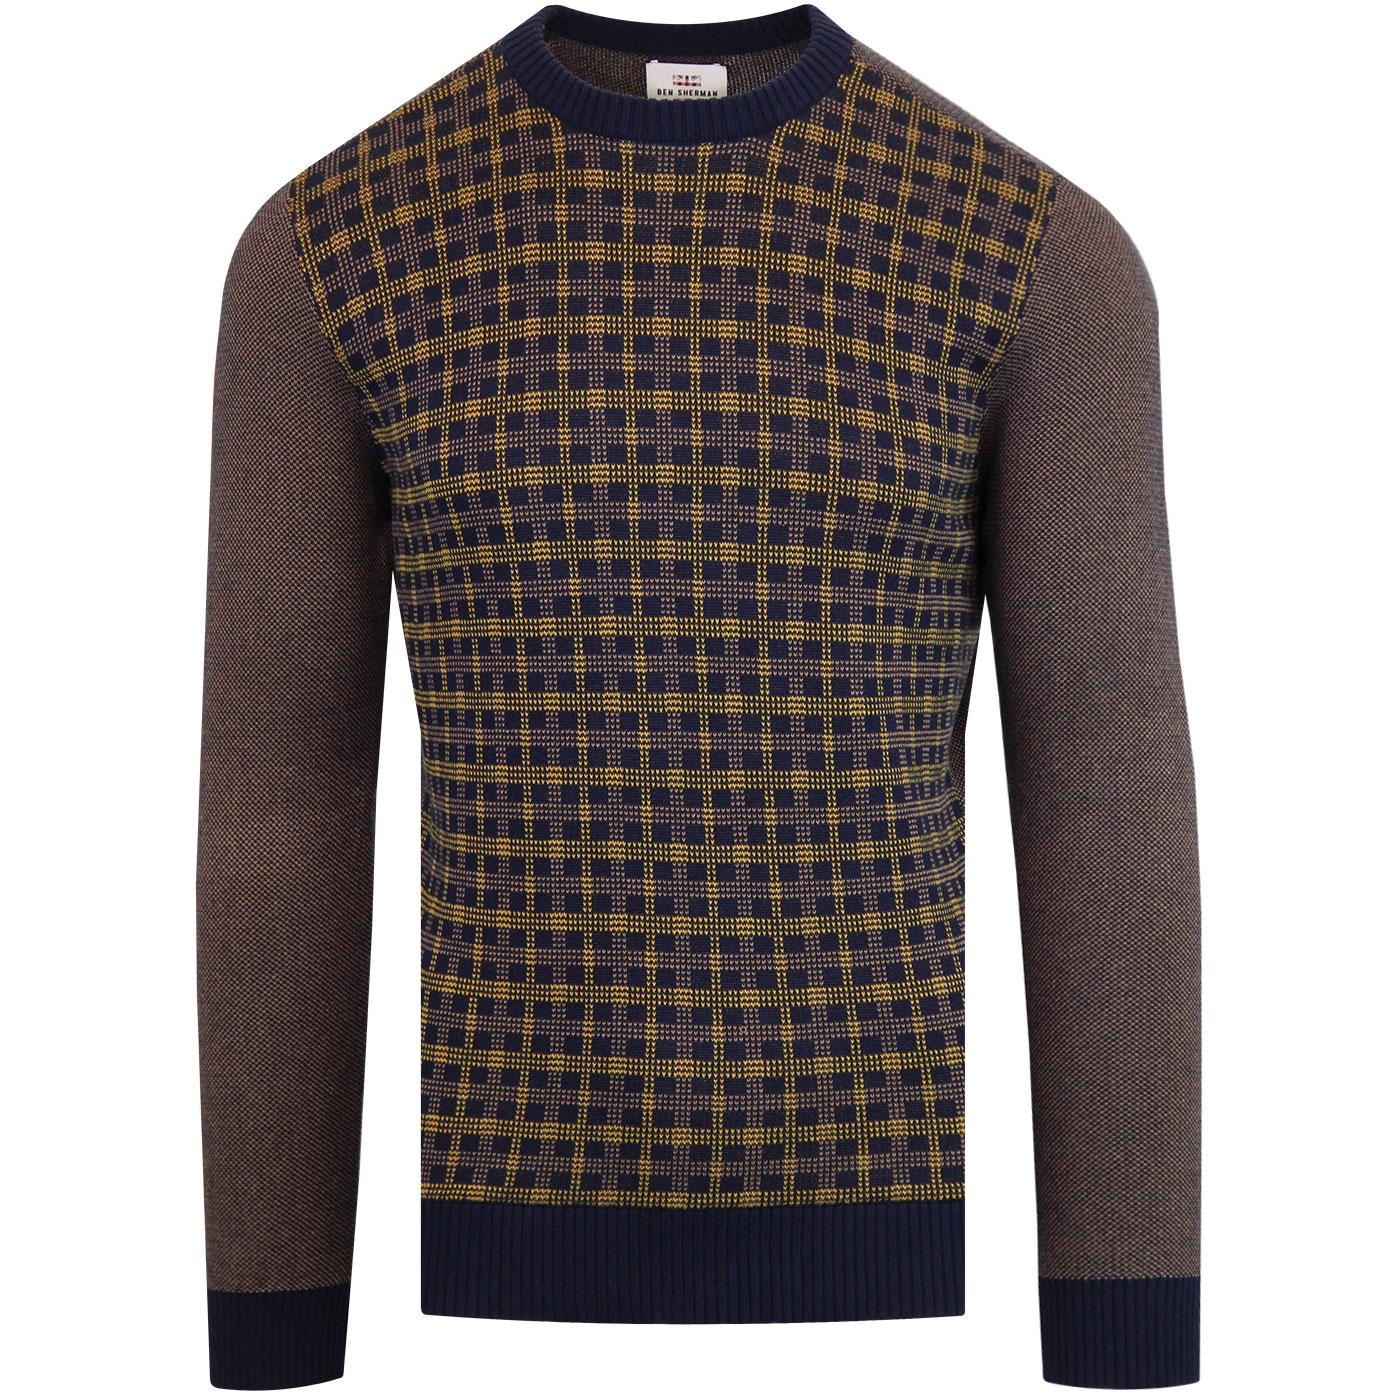 BEN SHERMAN Retro Birdseye Check Knitted Jumper